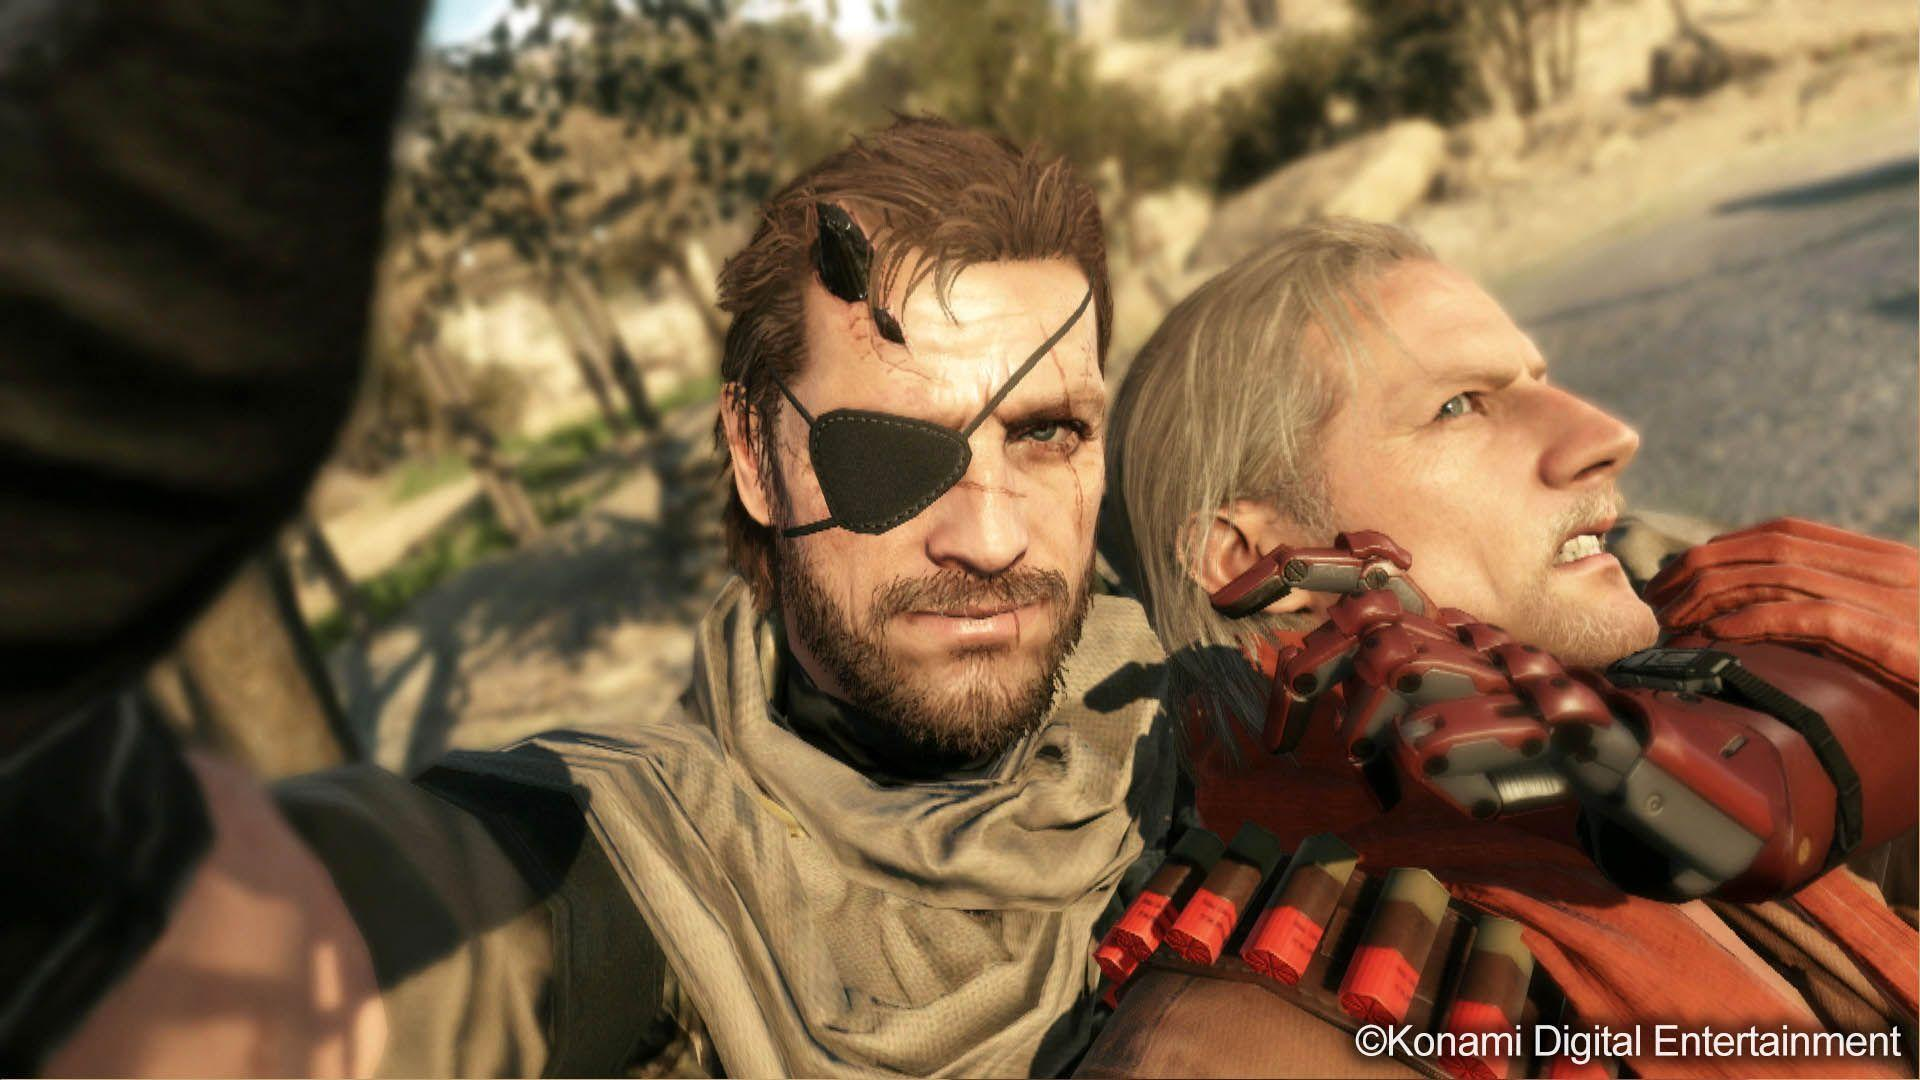 Big Boss & Ocelot Scene - Metal Gear Solid V: The Phantom Pain ...